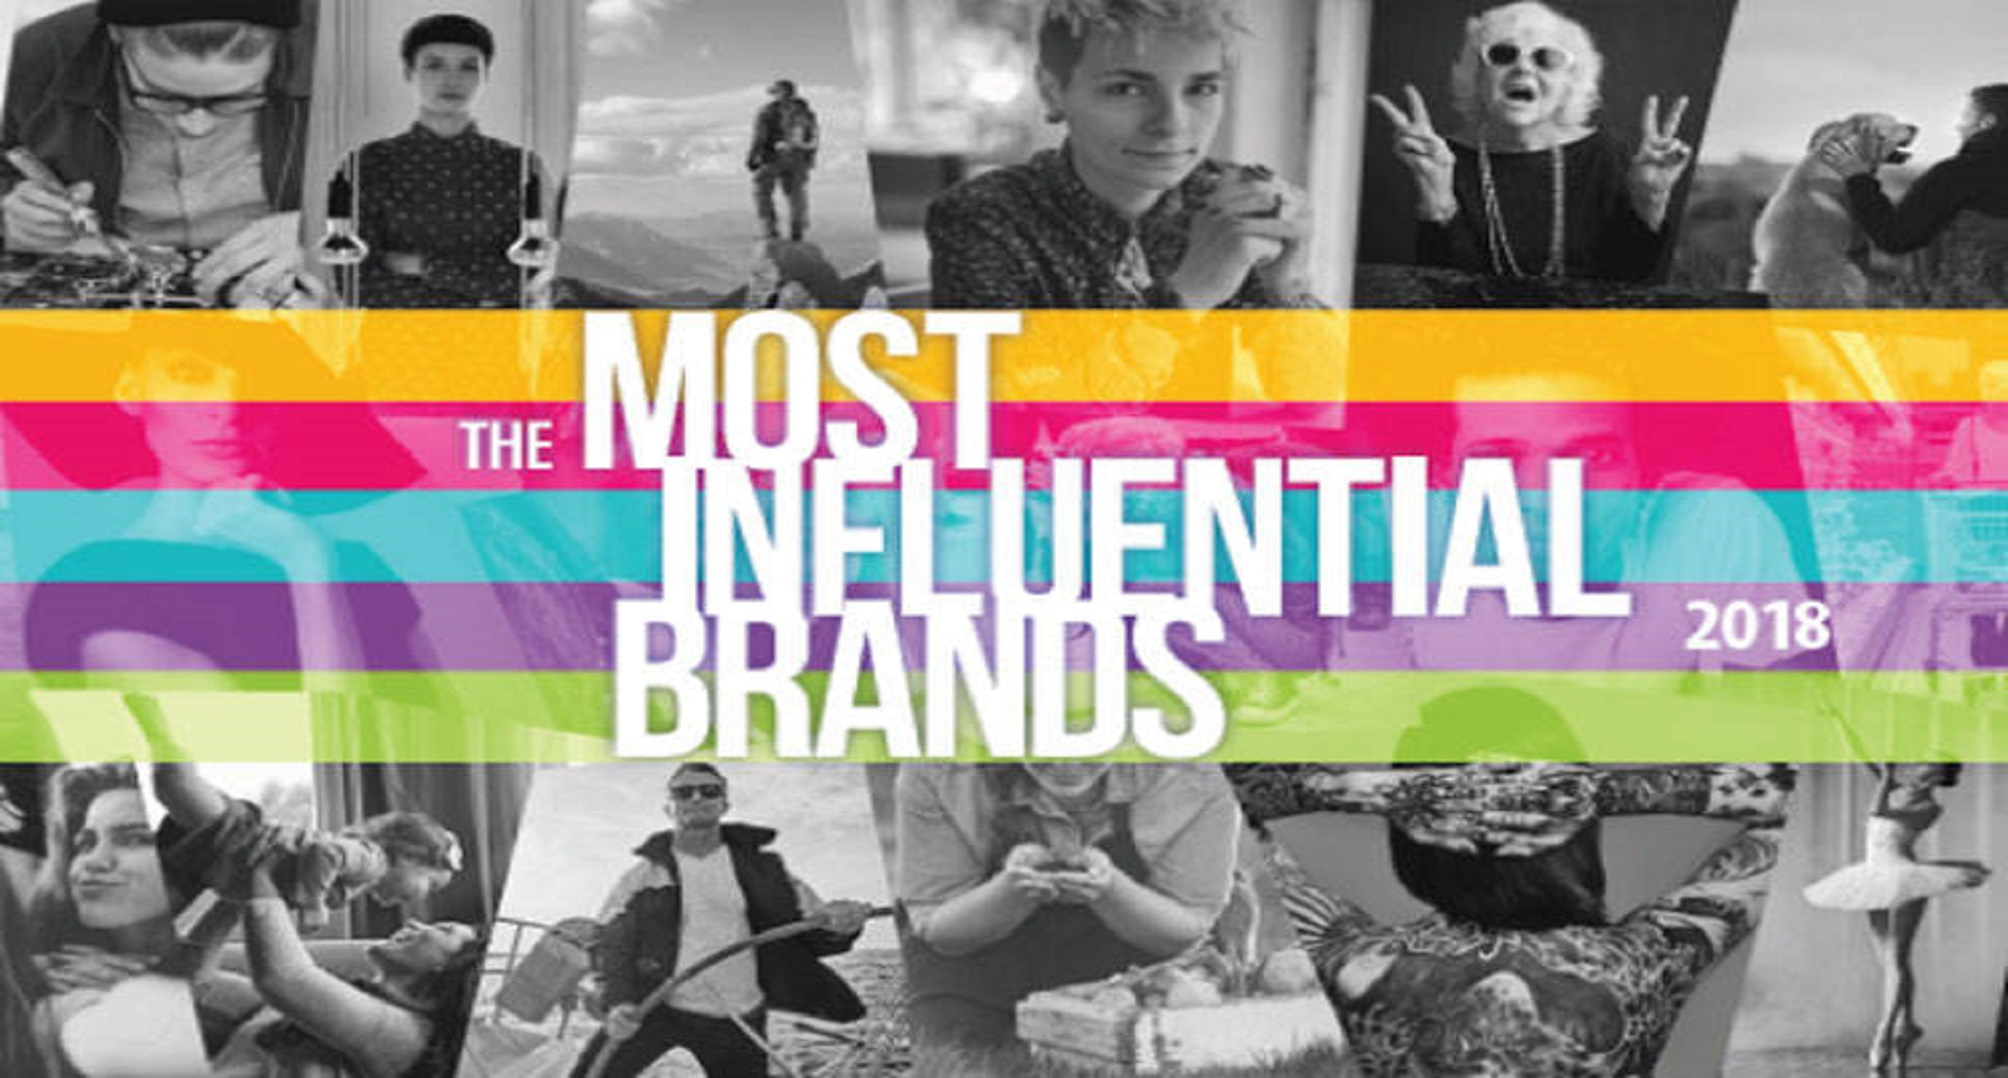 The Most Influential Brands 2018